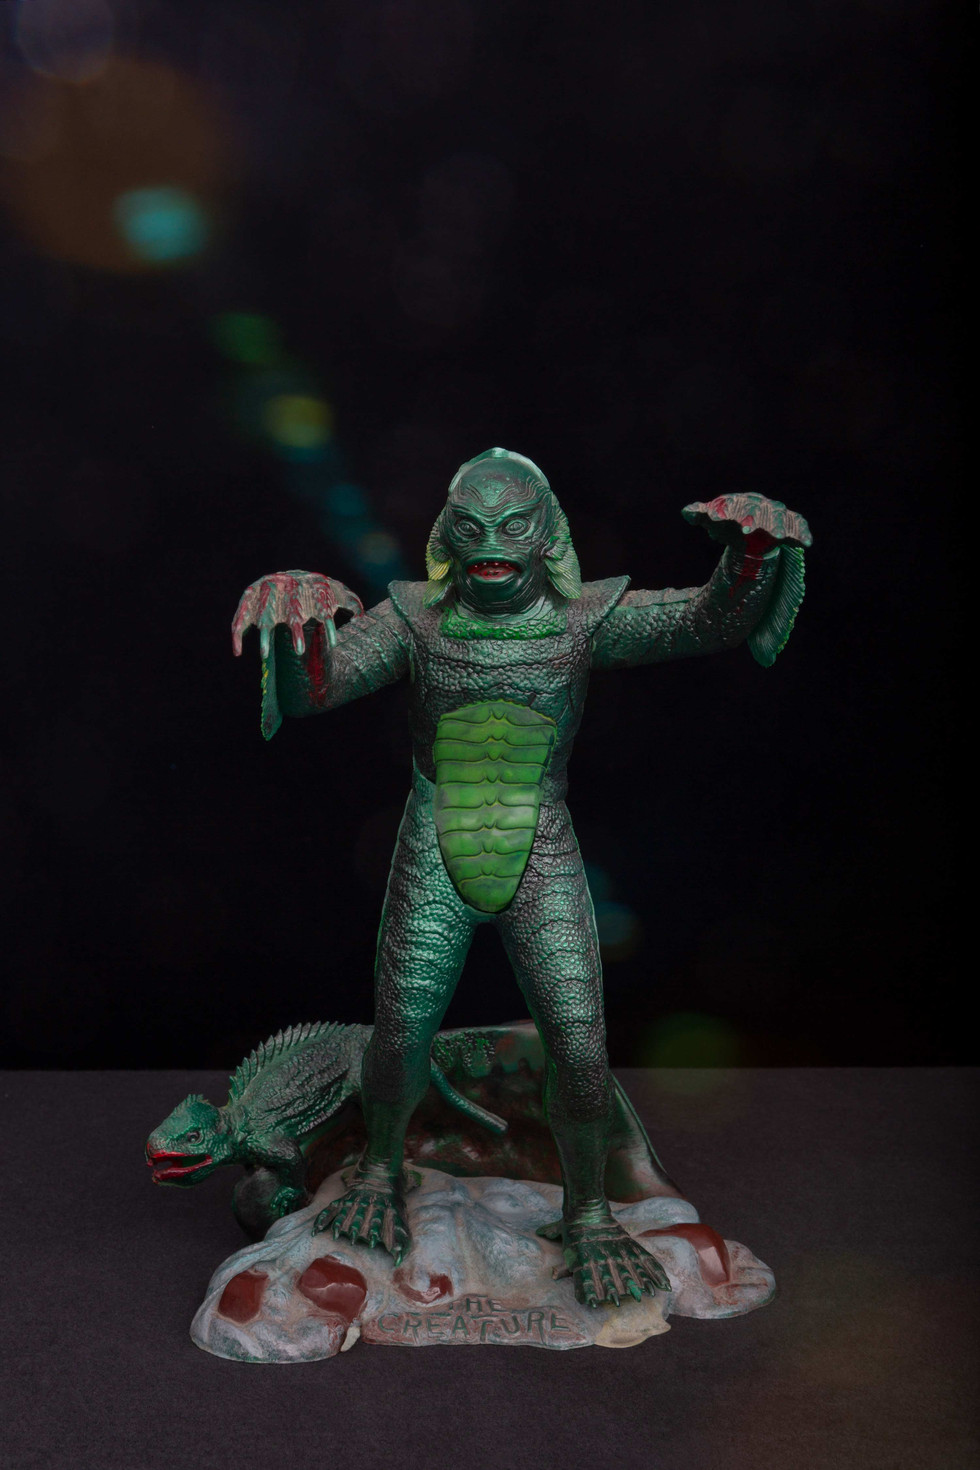 Creature from the Black Lagoon toy model - constructed & hand painted by Dan Nicoletta in the mid - 60s.